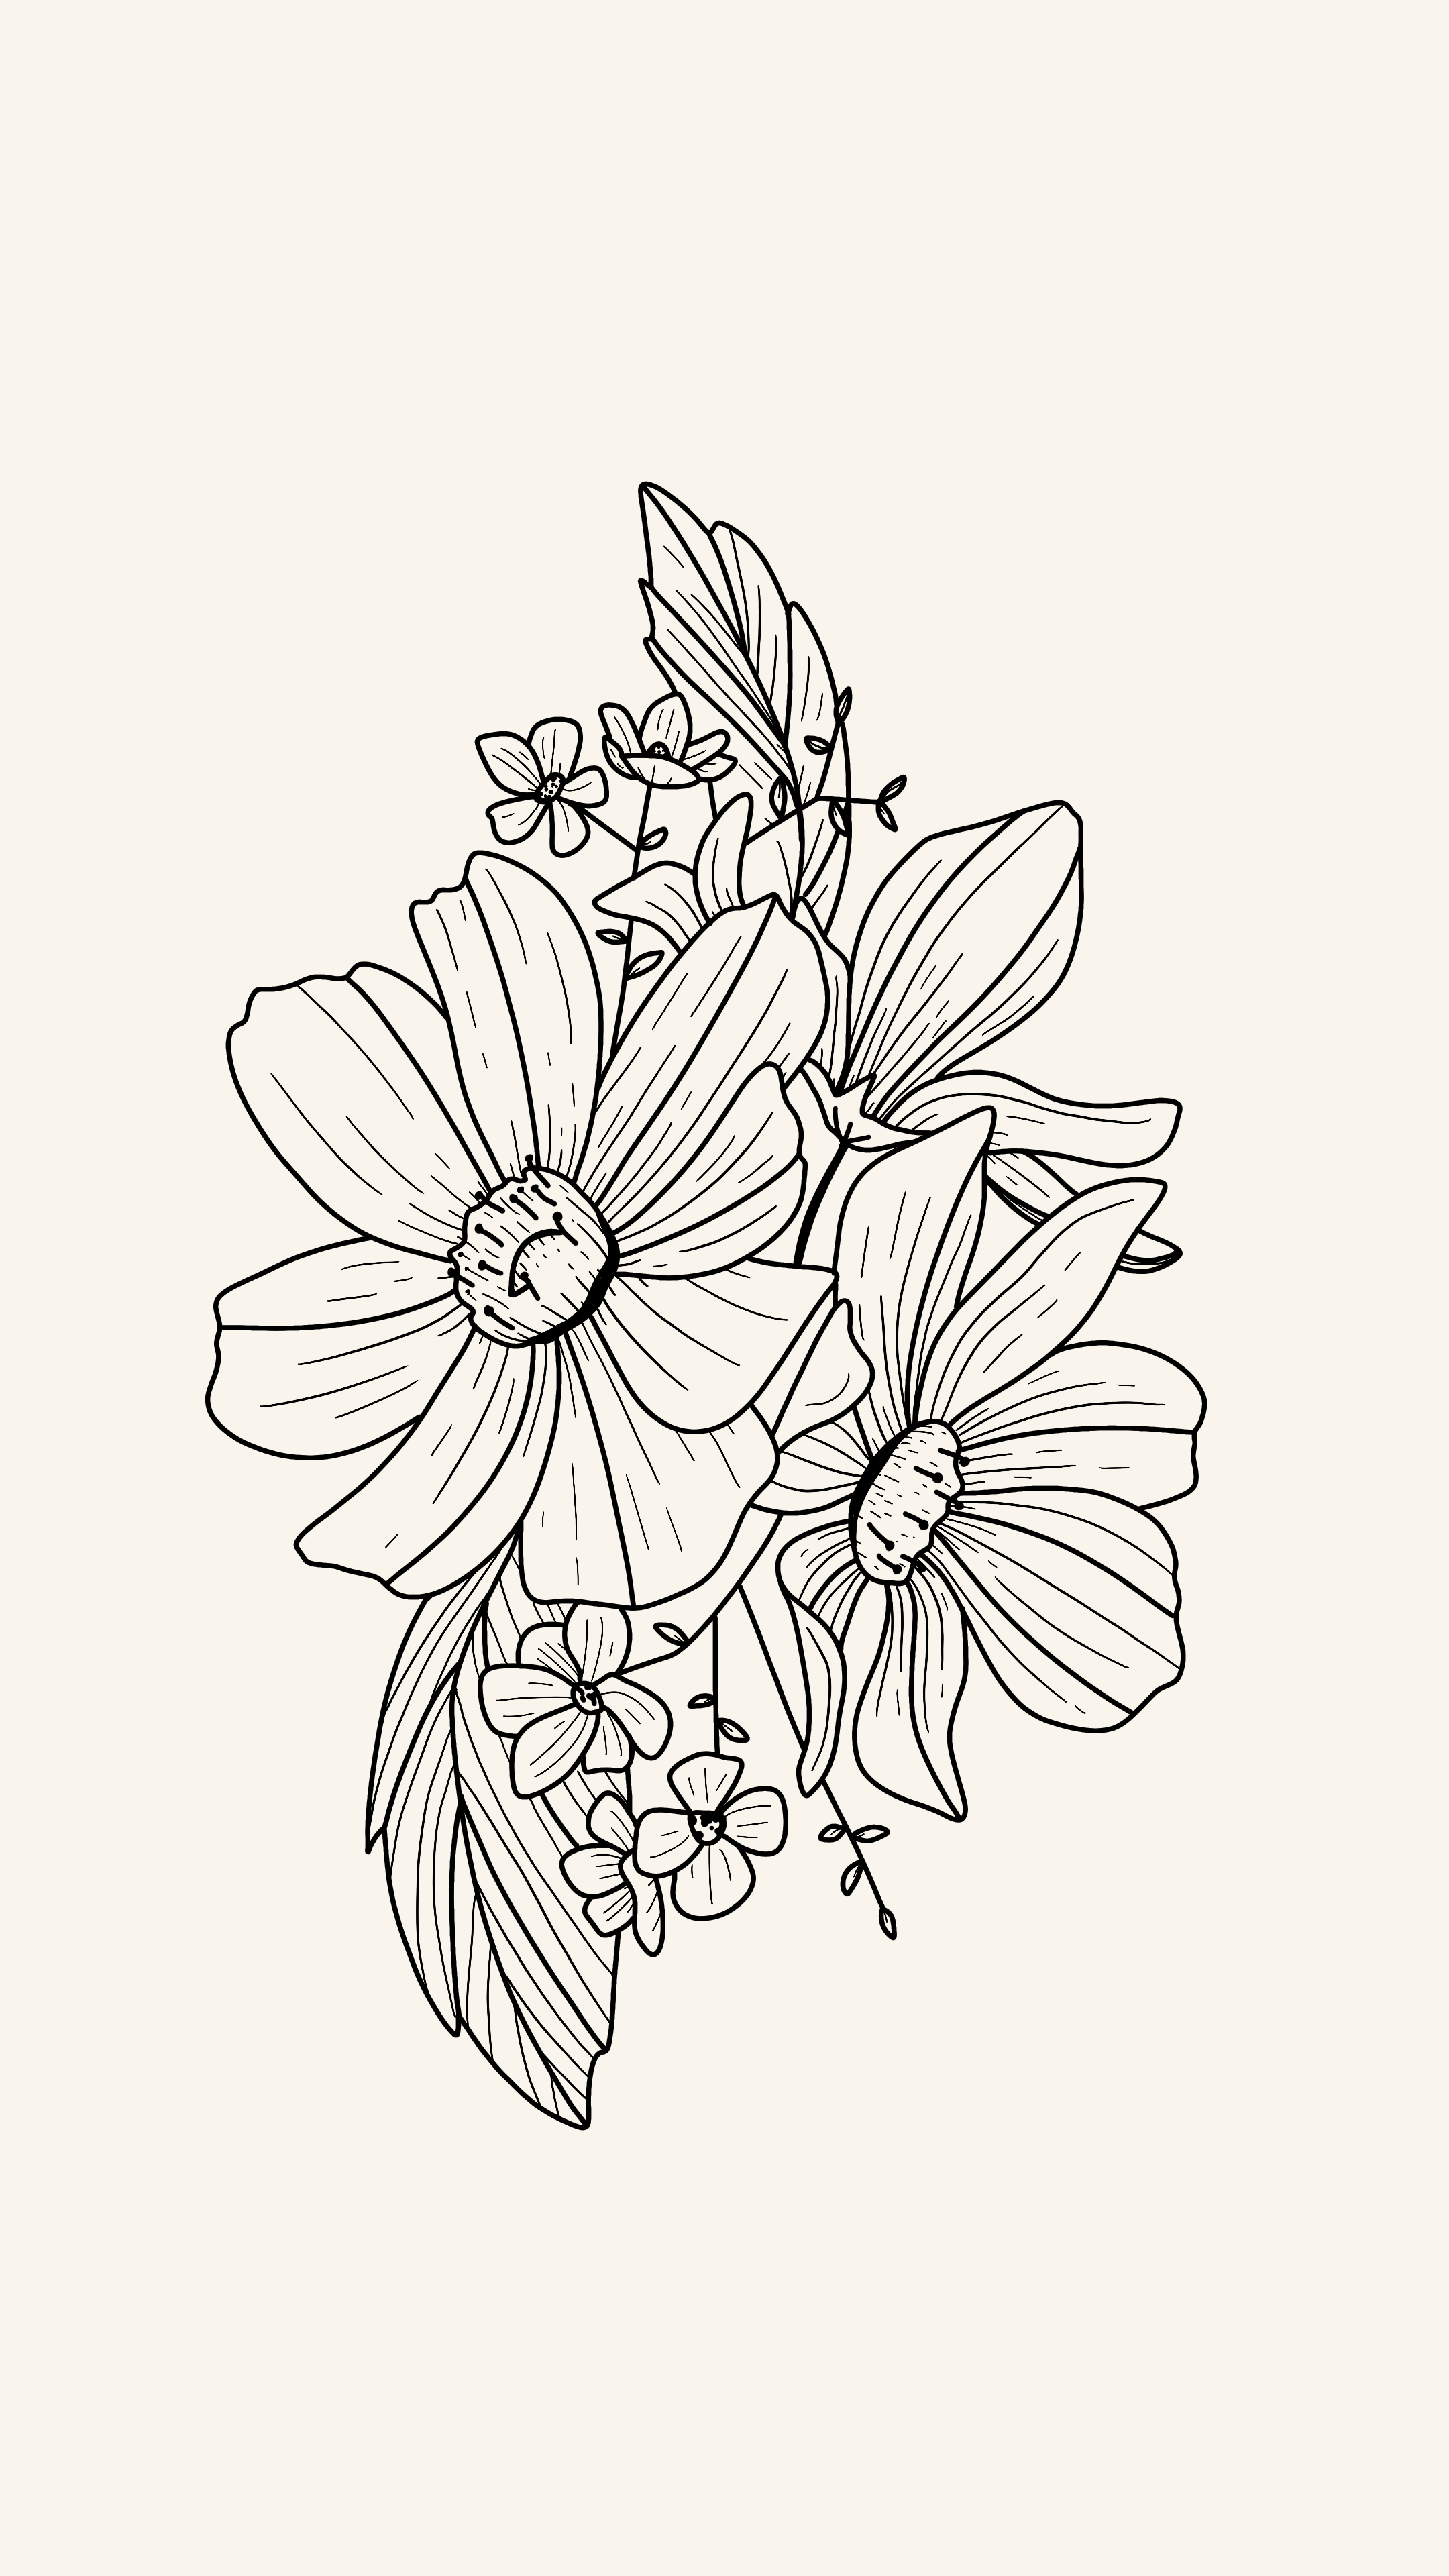 My May Flowers Line Art Flowers Floral Tattoo Design Line Art Drawings